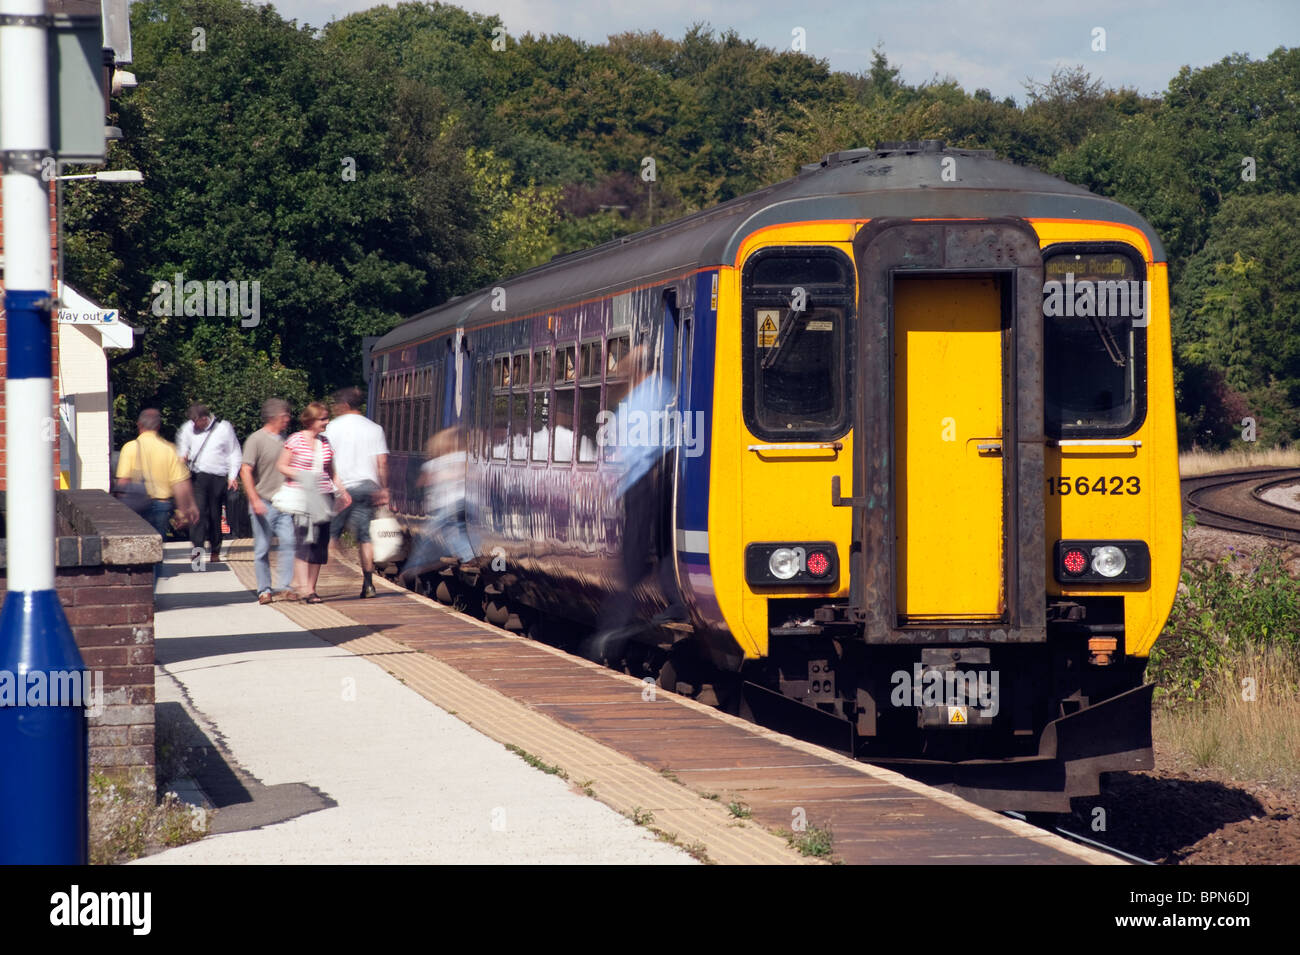 Train passengers leaving and boarding a train at Dore and Totley railway station on the Northern Line - Stock Image